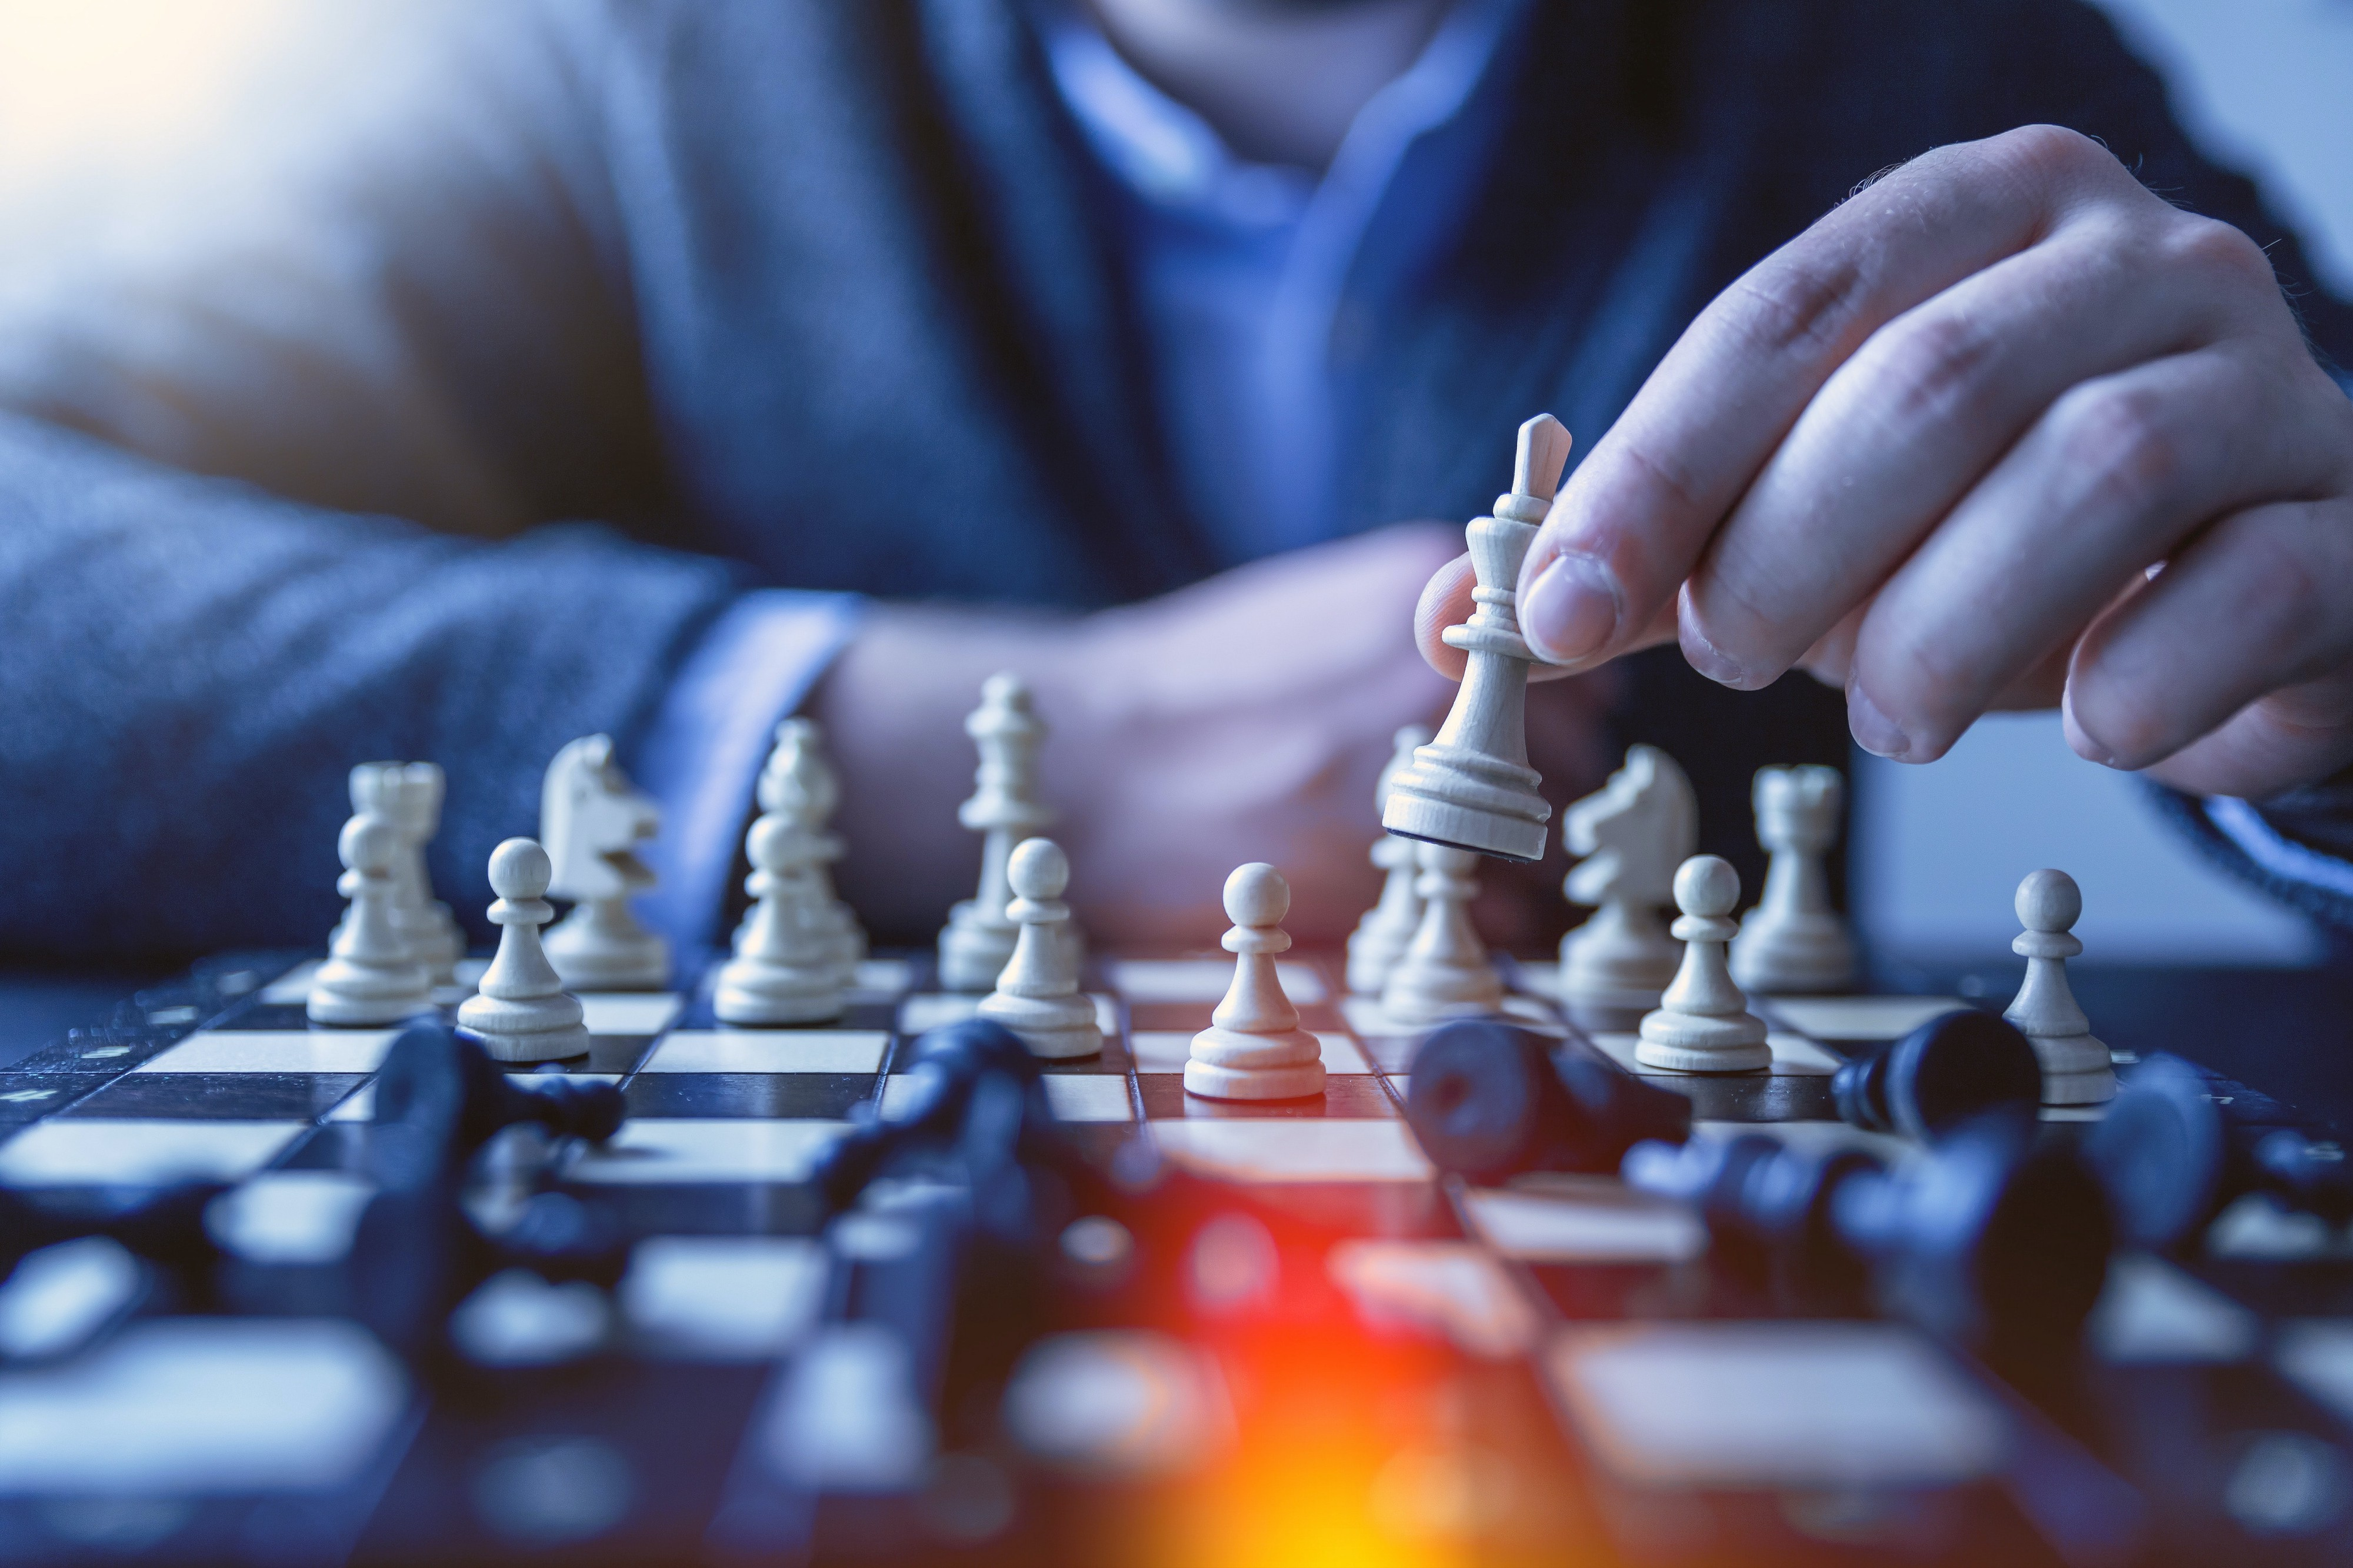 Color image of man playing chess